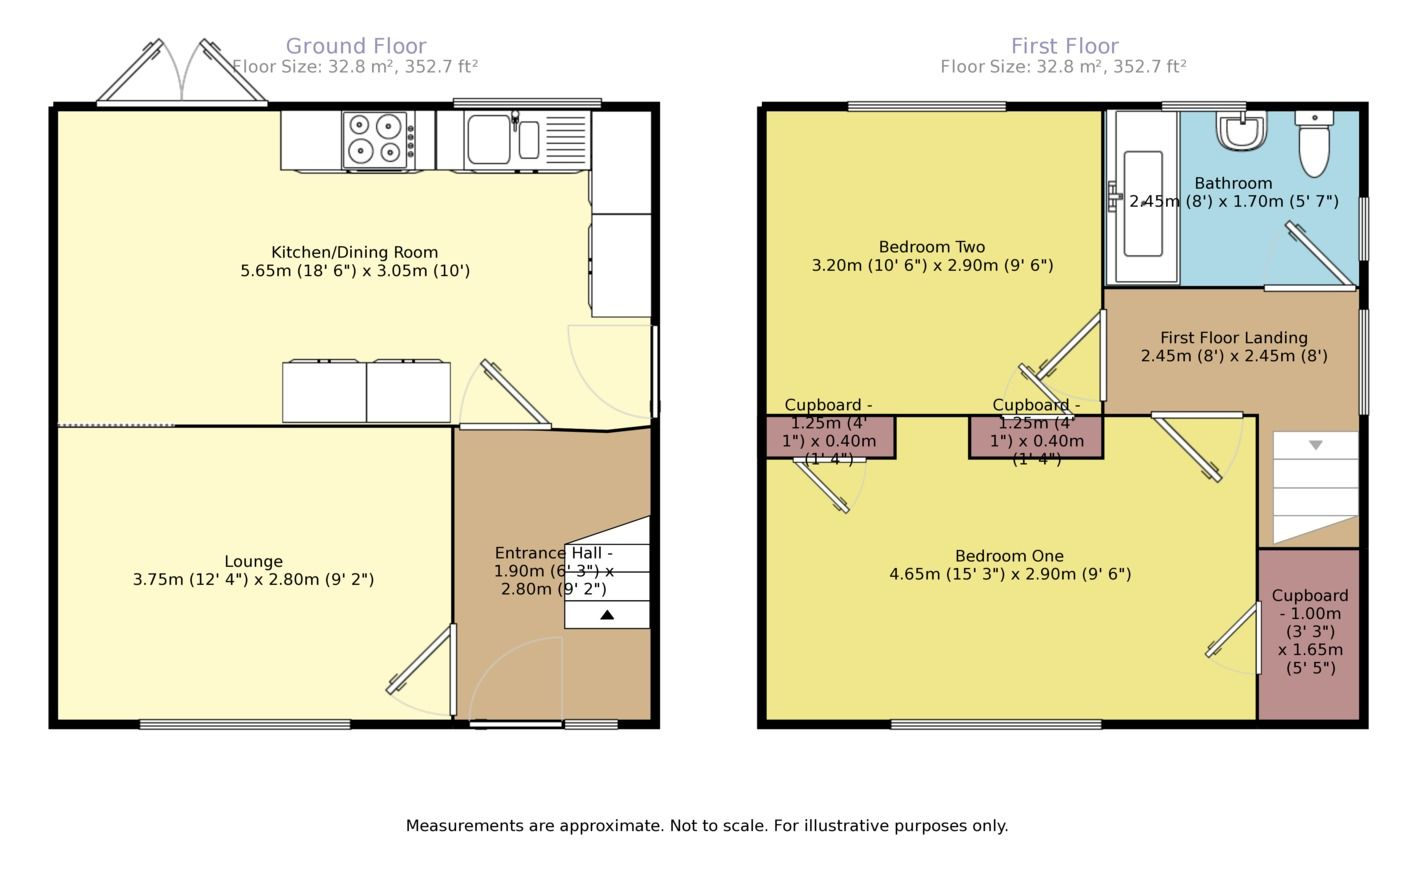 2 bedroom houses for sale in sunderland your move 2 bedroom houses for sale in thagoona qld 4306